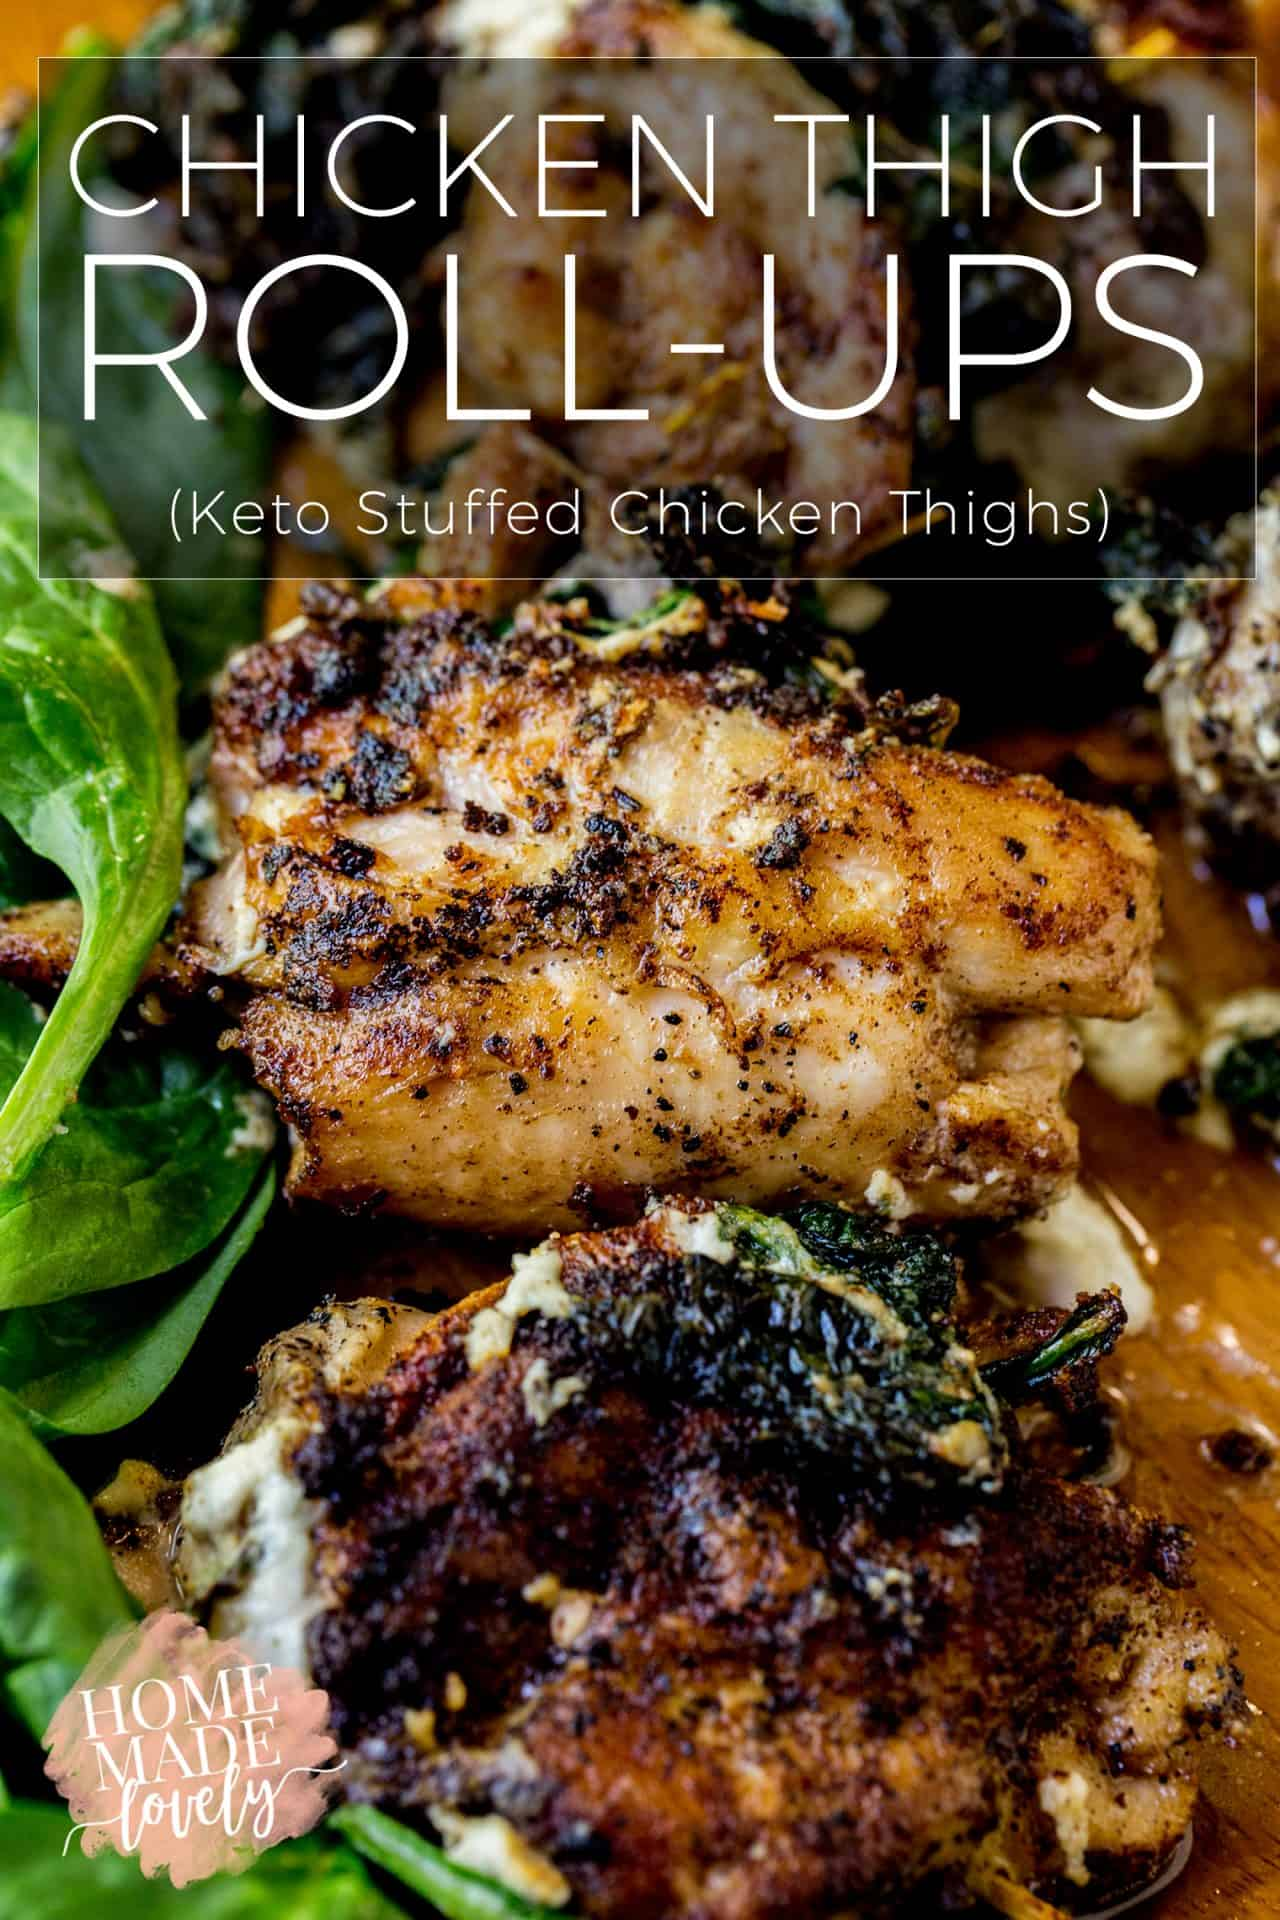 keto chicken thigh roll-ups